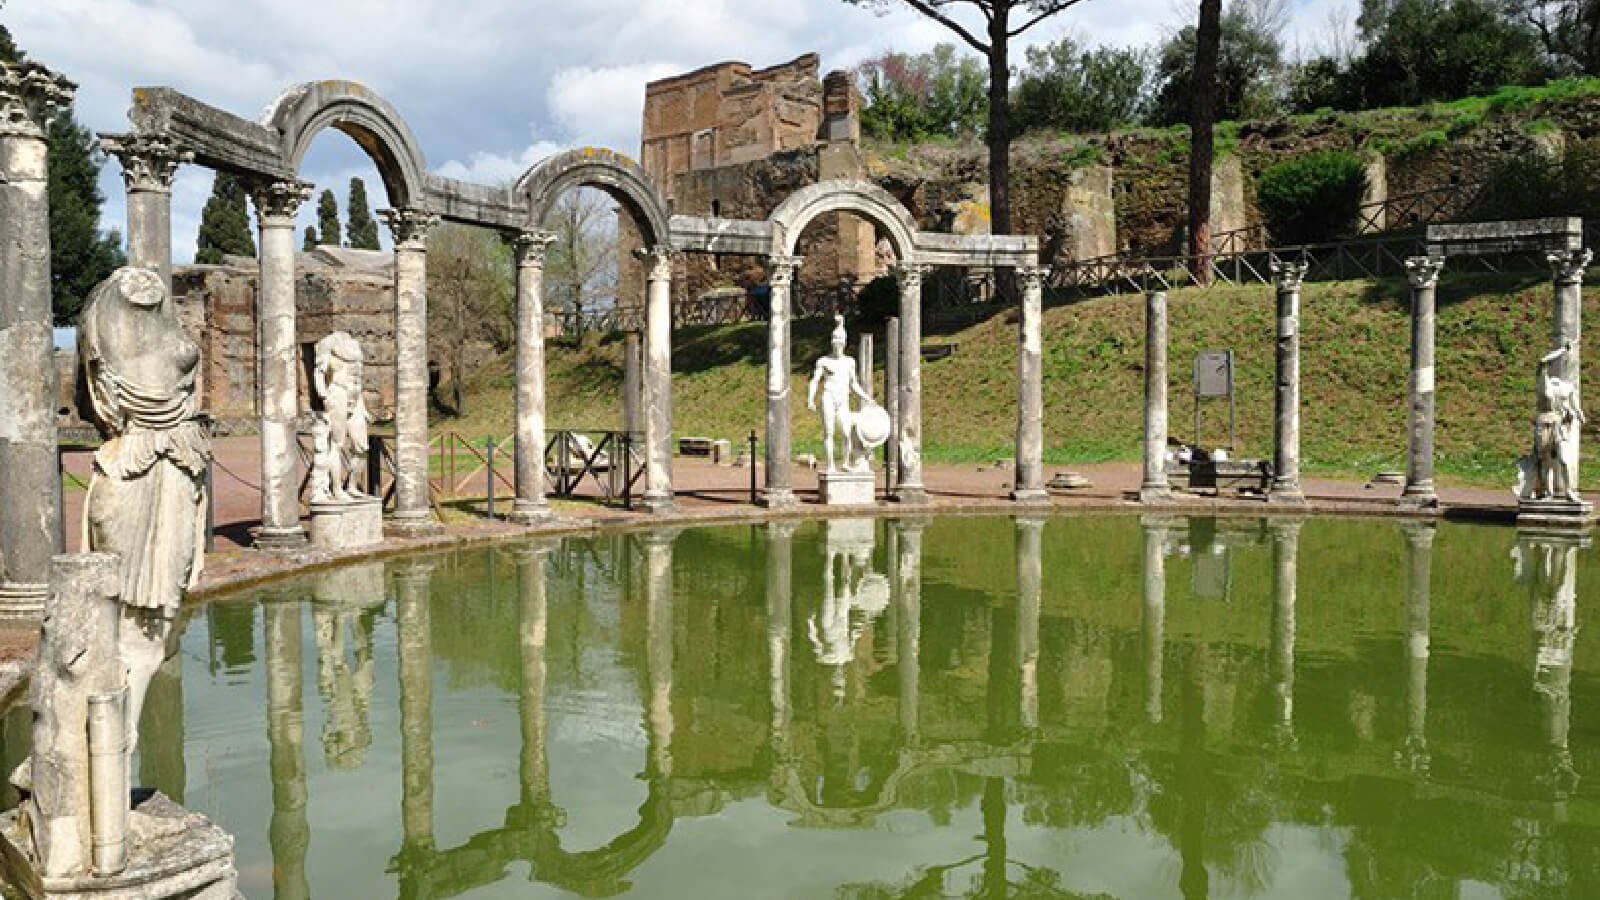 A glimpse of Villa Adriana in Tivoli